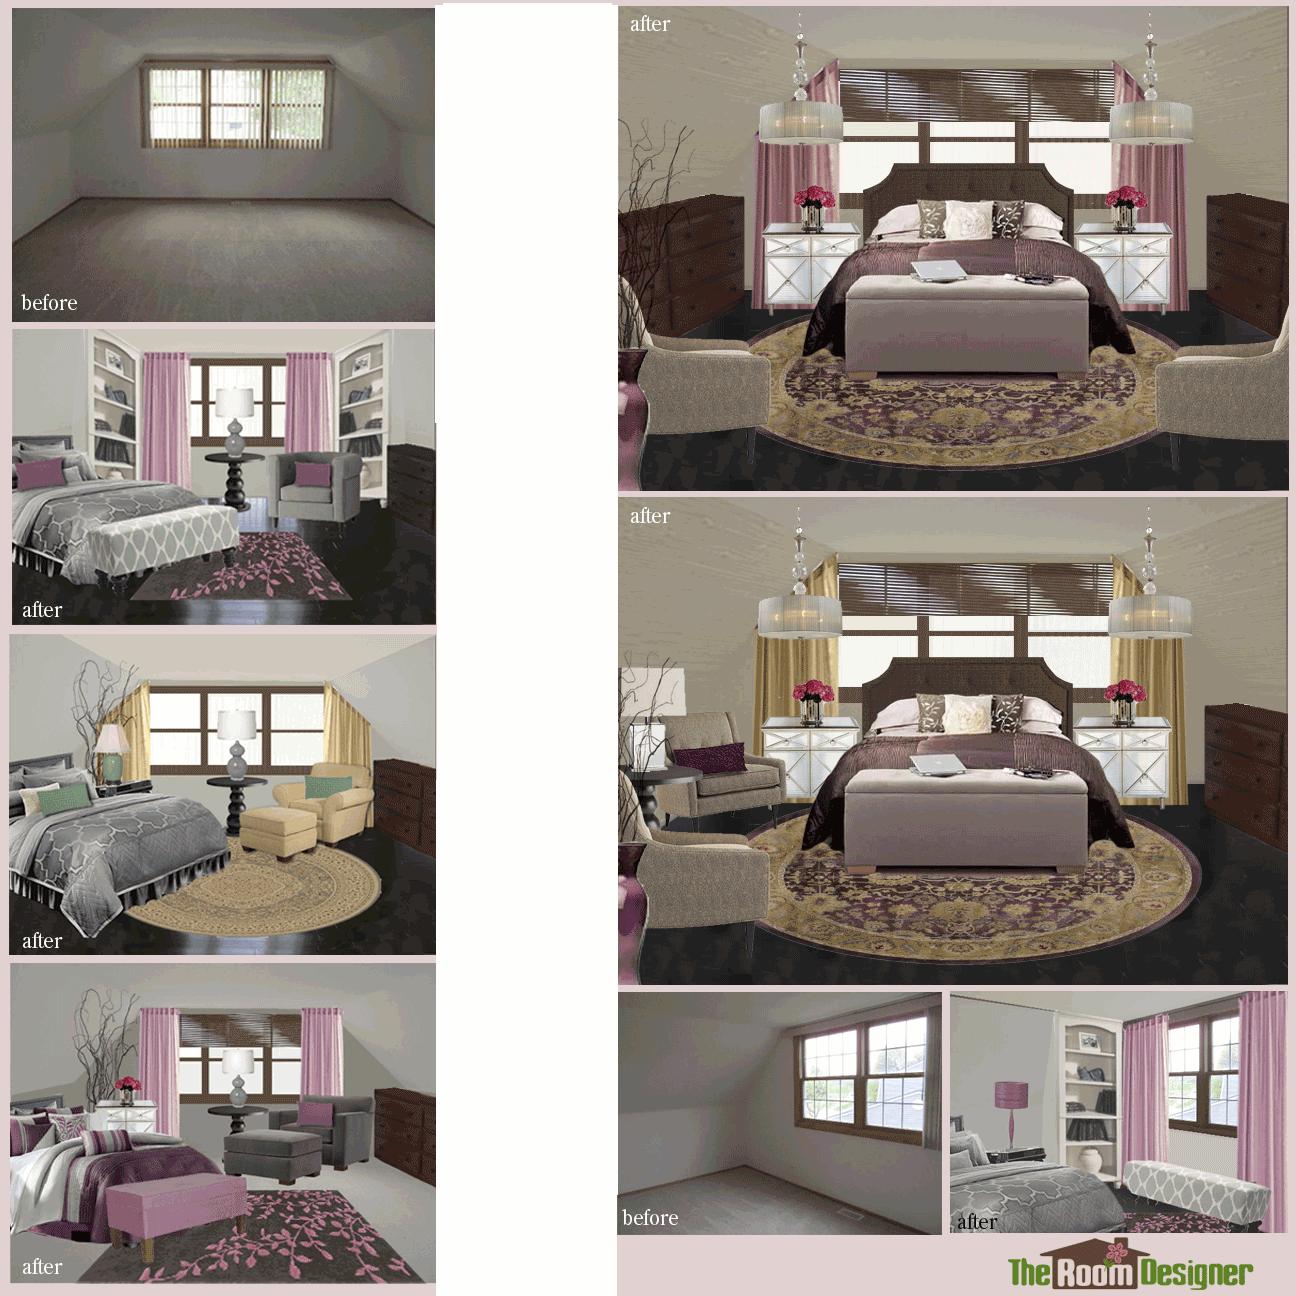 designs-1 How to Decorate Your Home on Your Own?